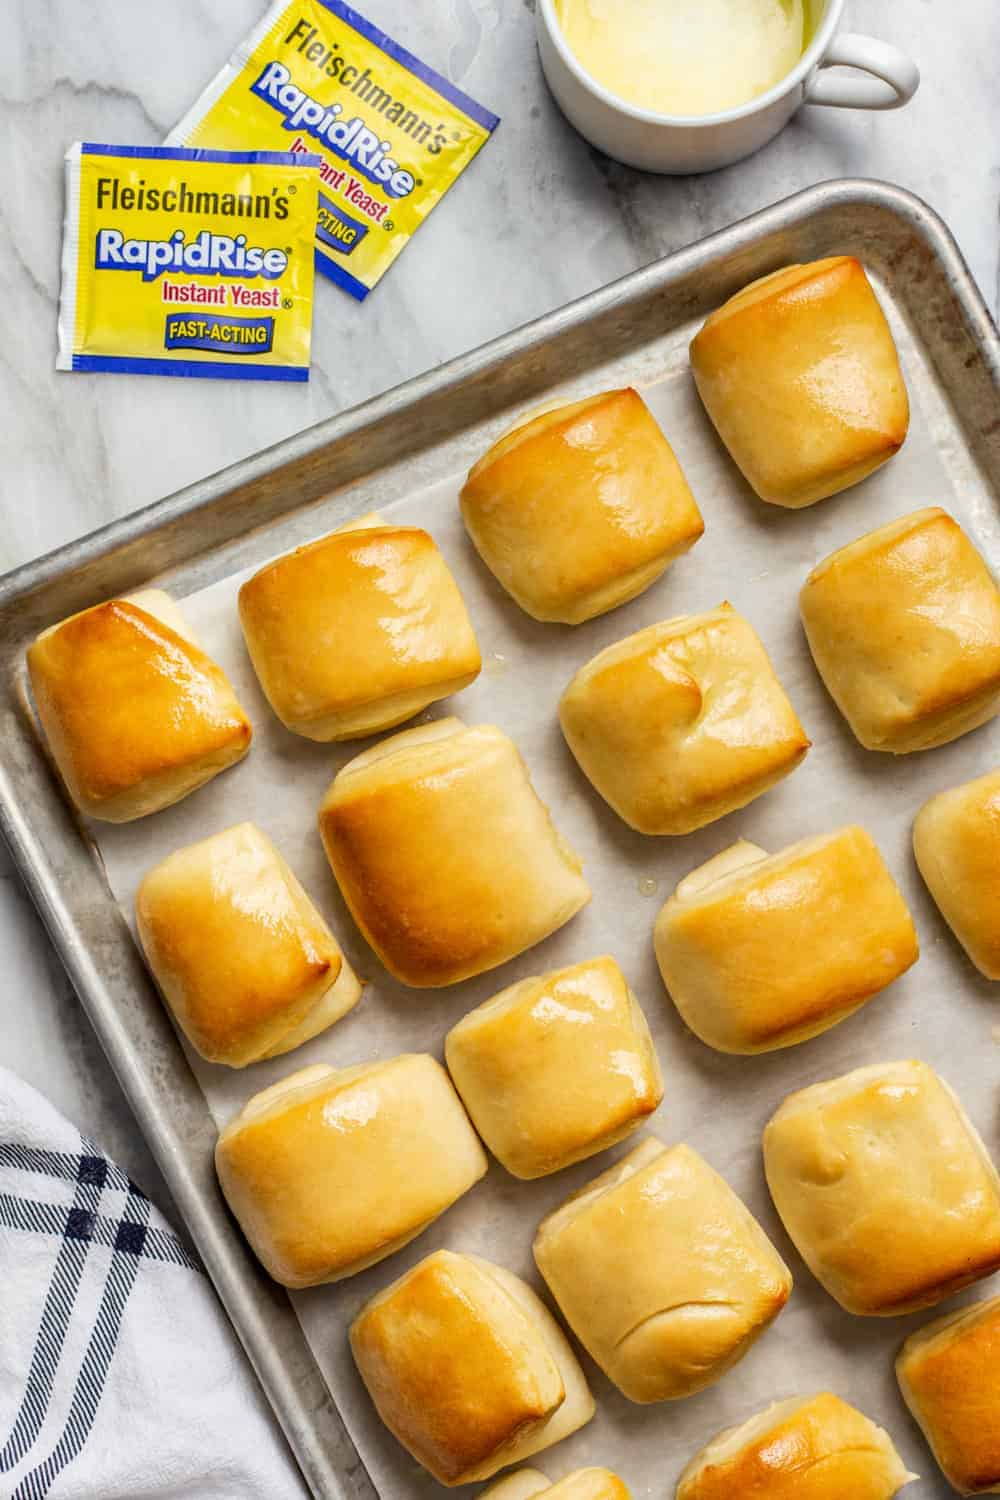 Baked parker house rolls on a baking sheet, freshly brushed with butter